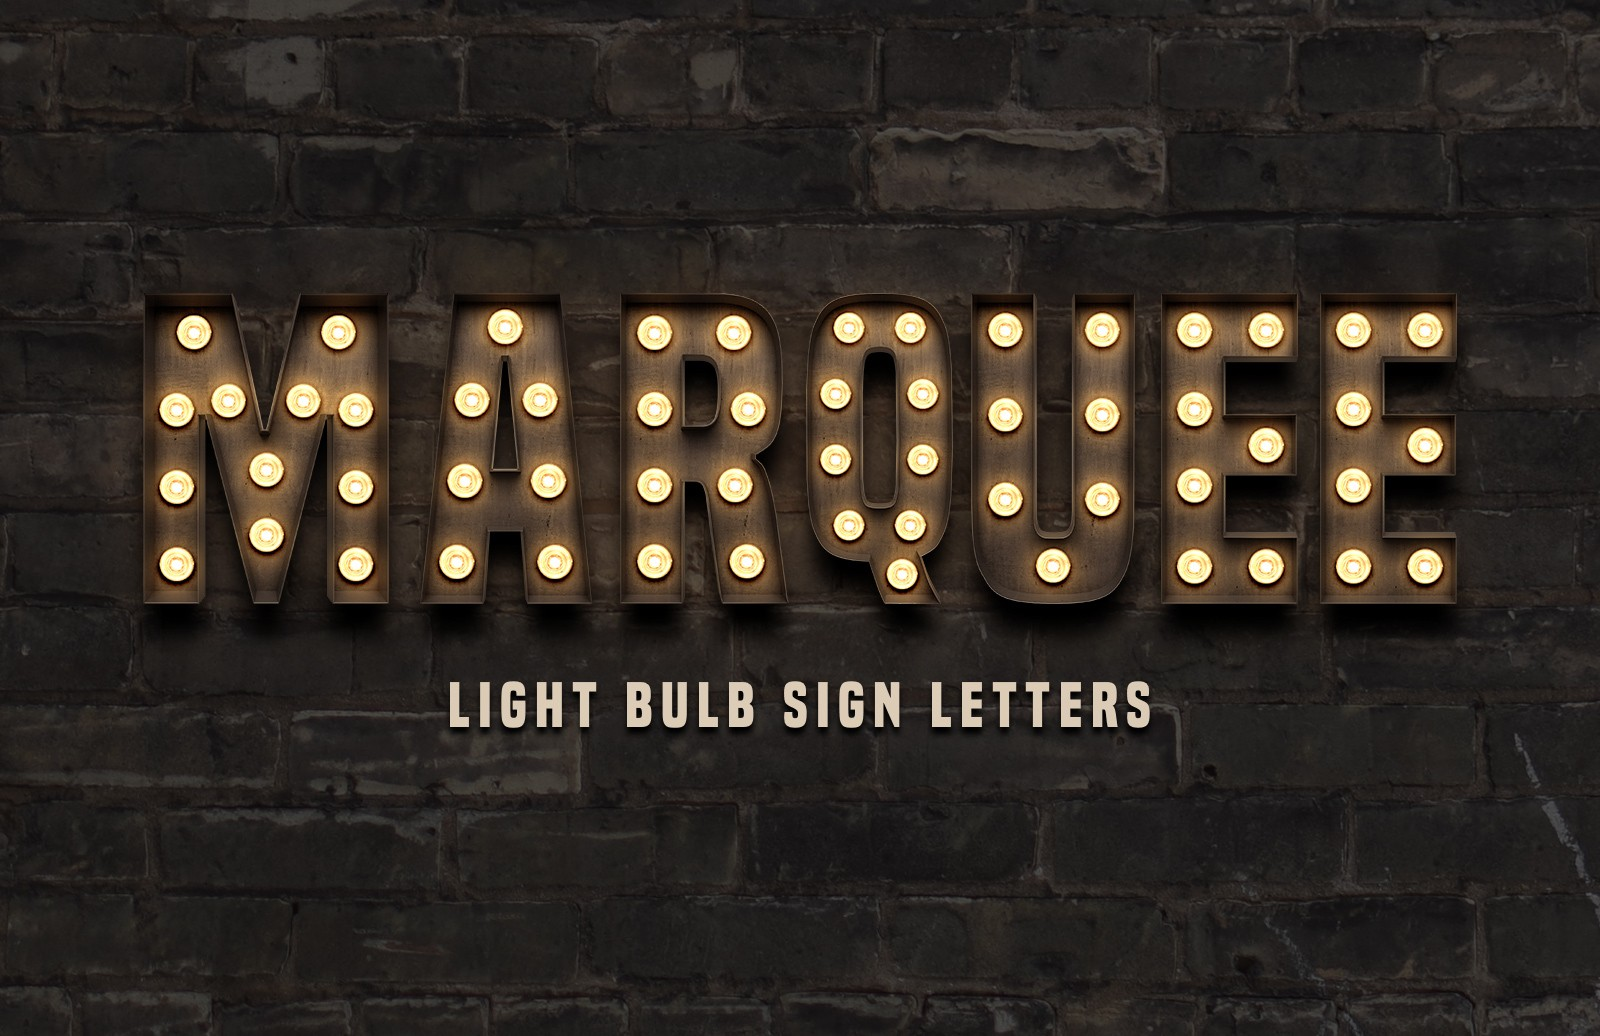 Marquee: Light Bulb Sign Letters